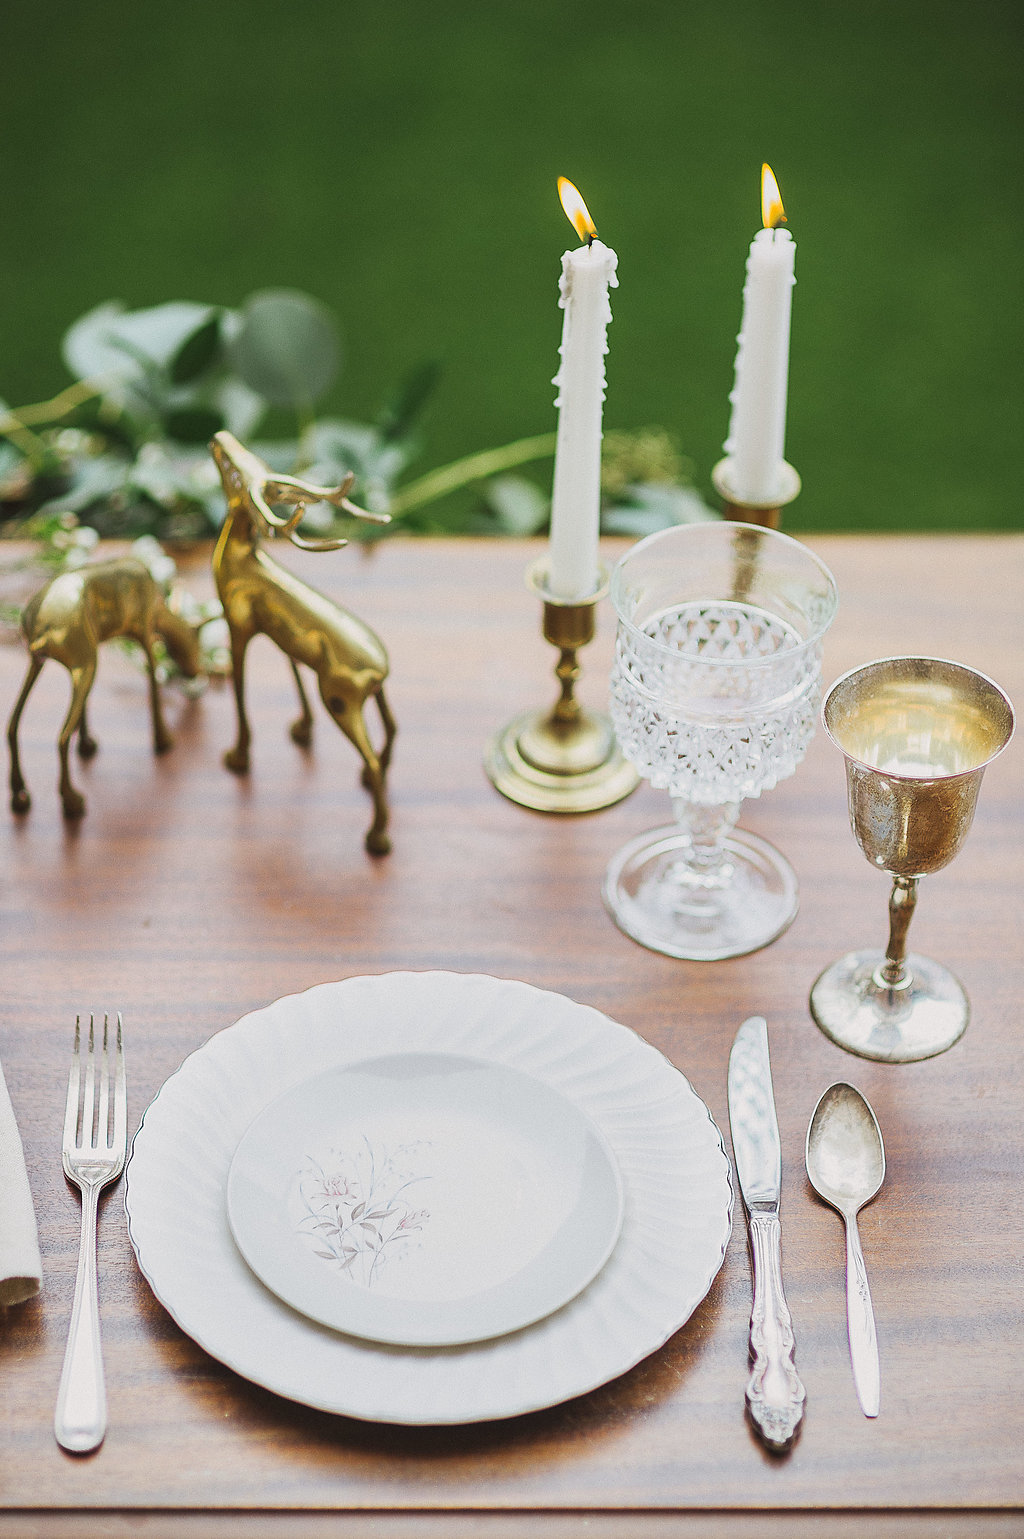 Vintage Dinnerware and Goblets